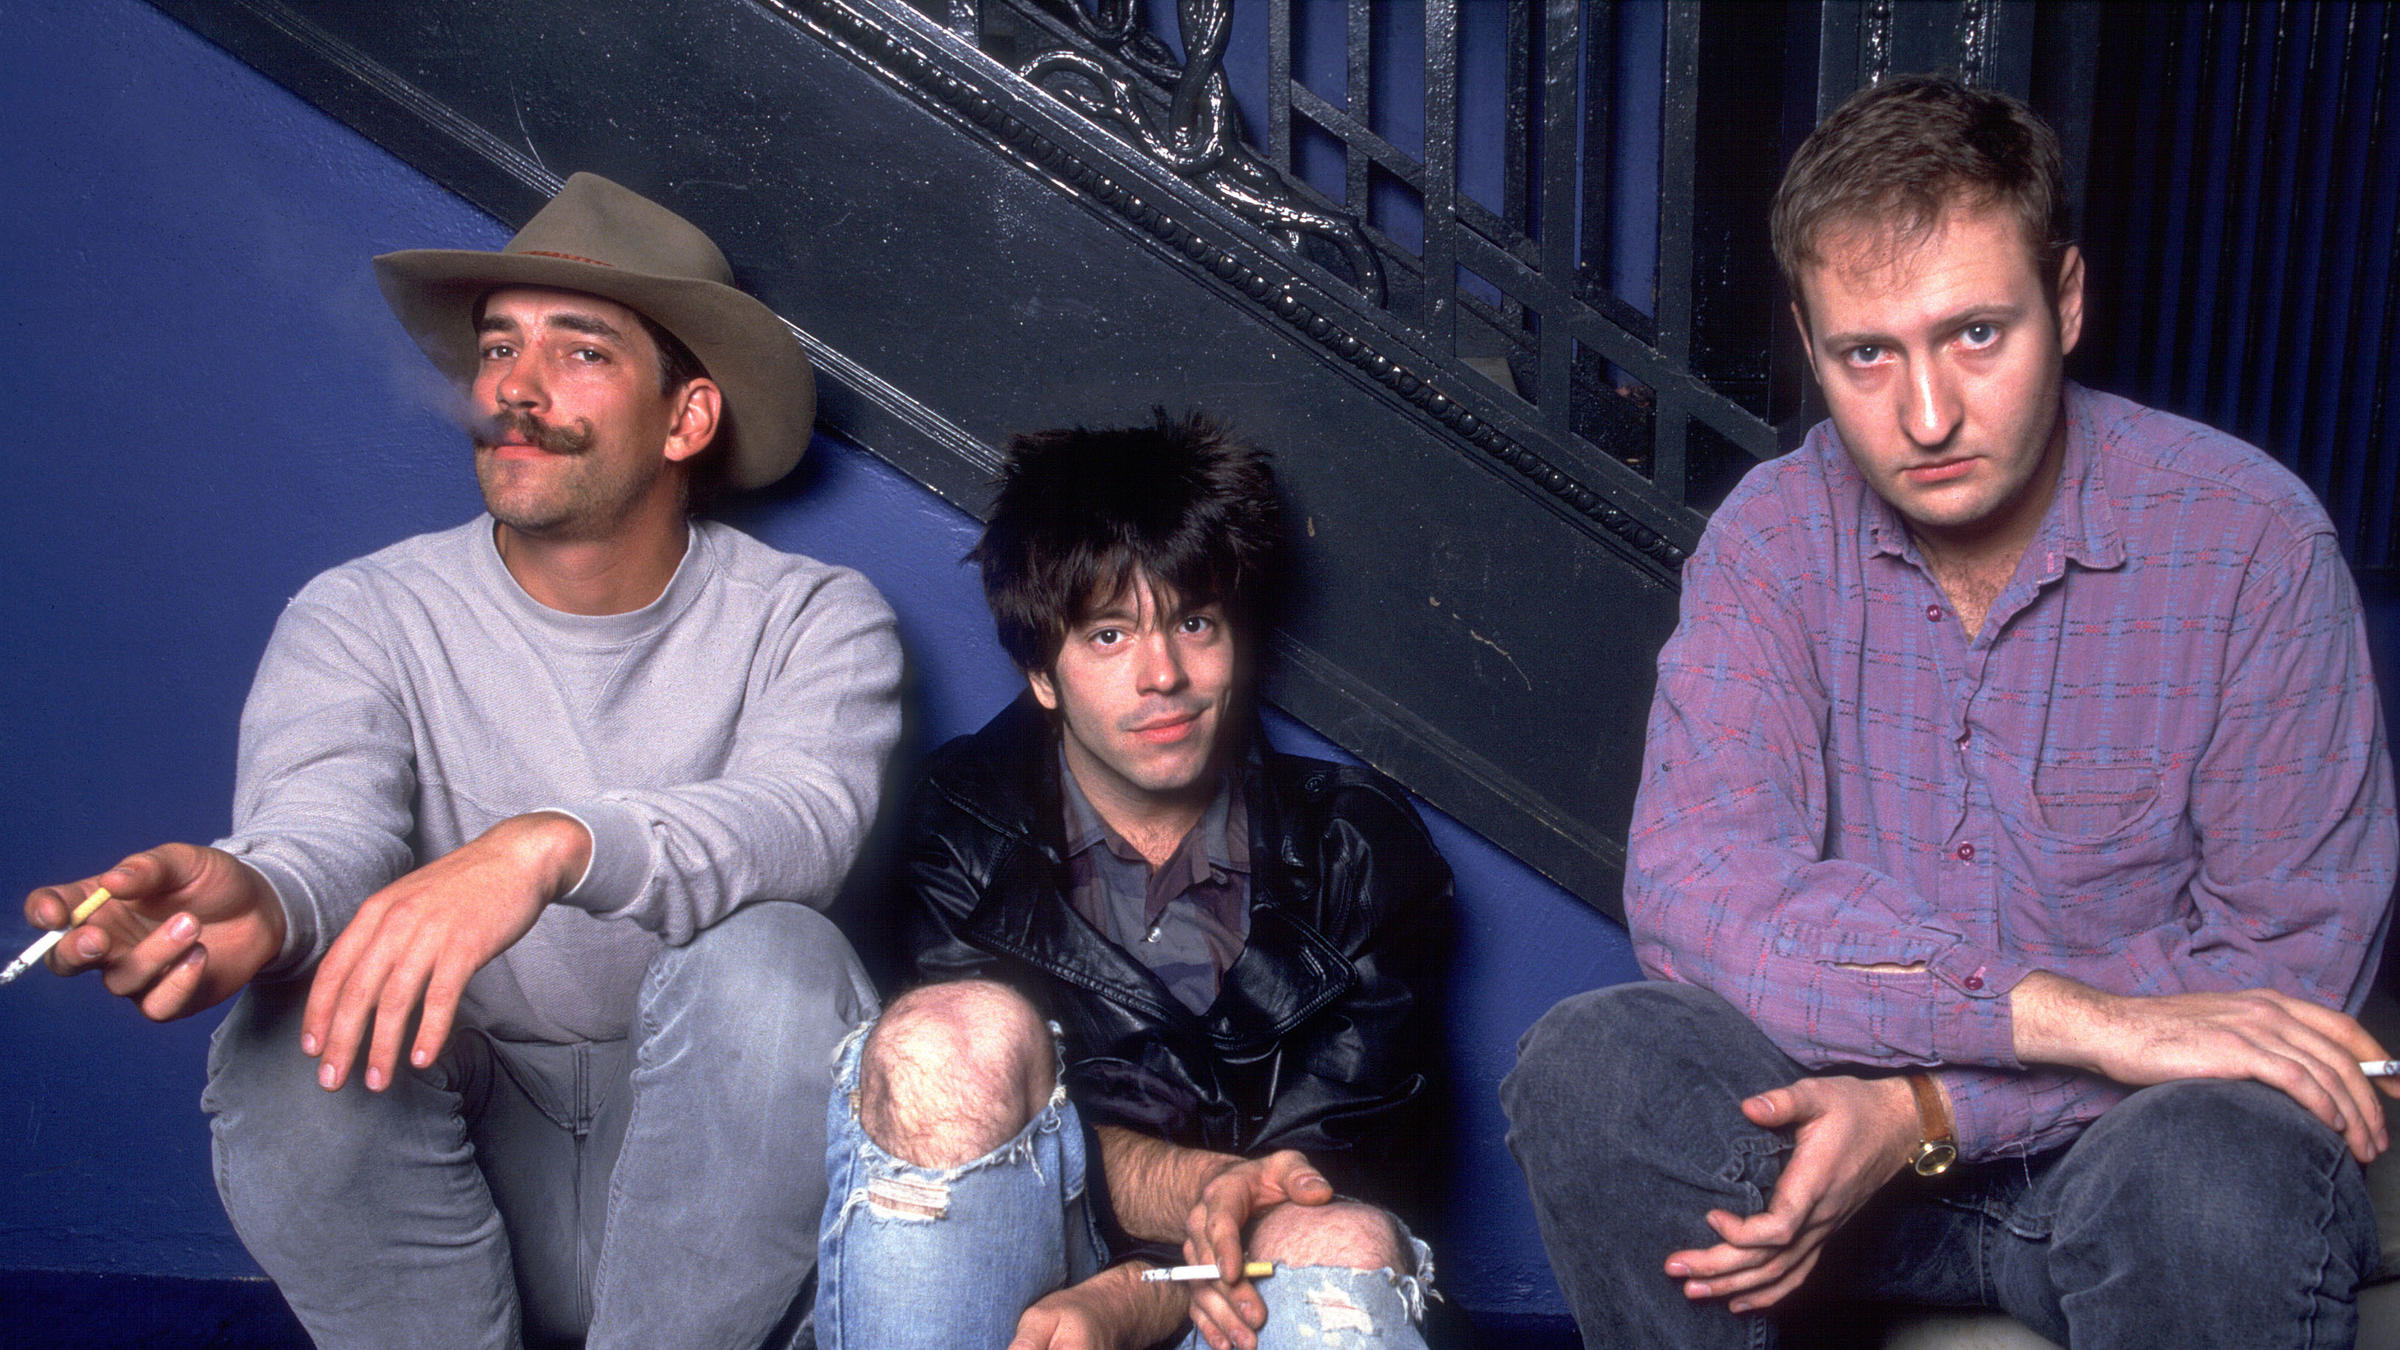 Grant Hart of band Husker Du, dies at 56